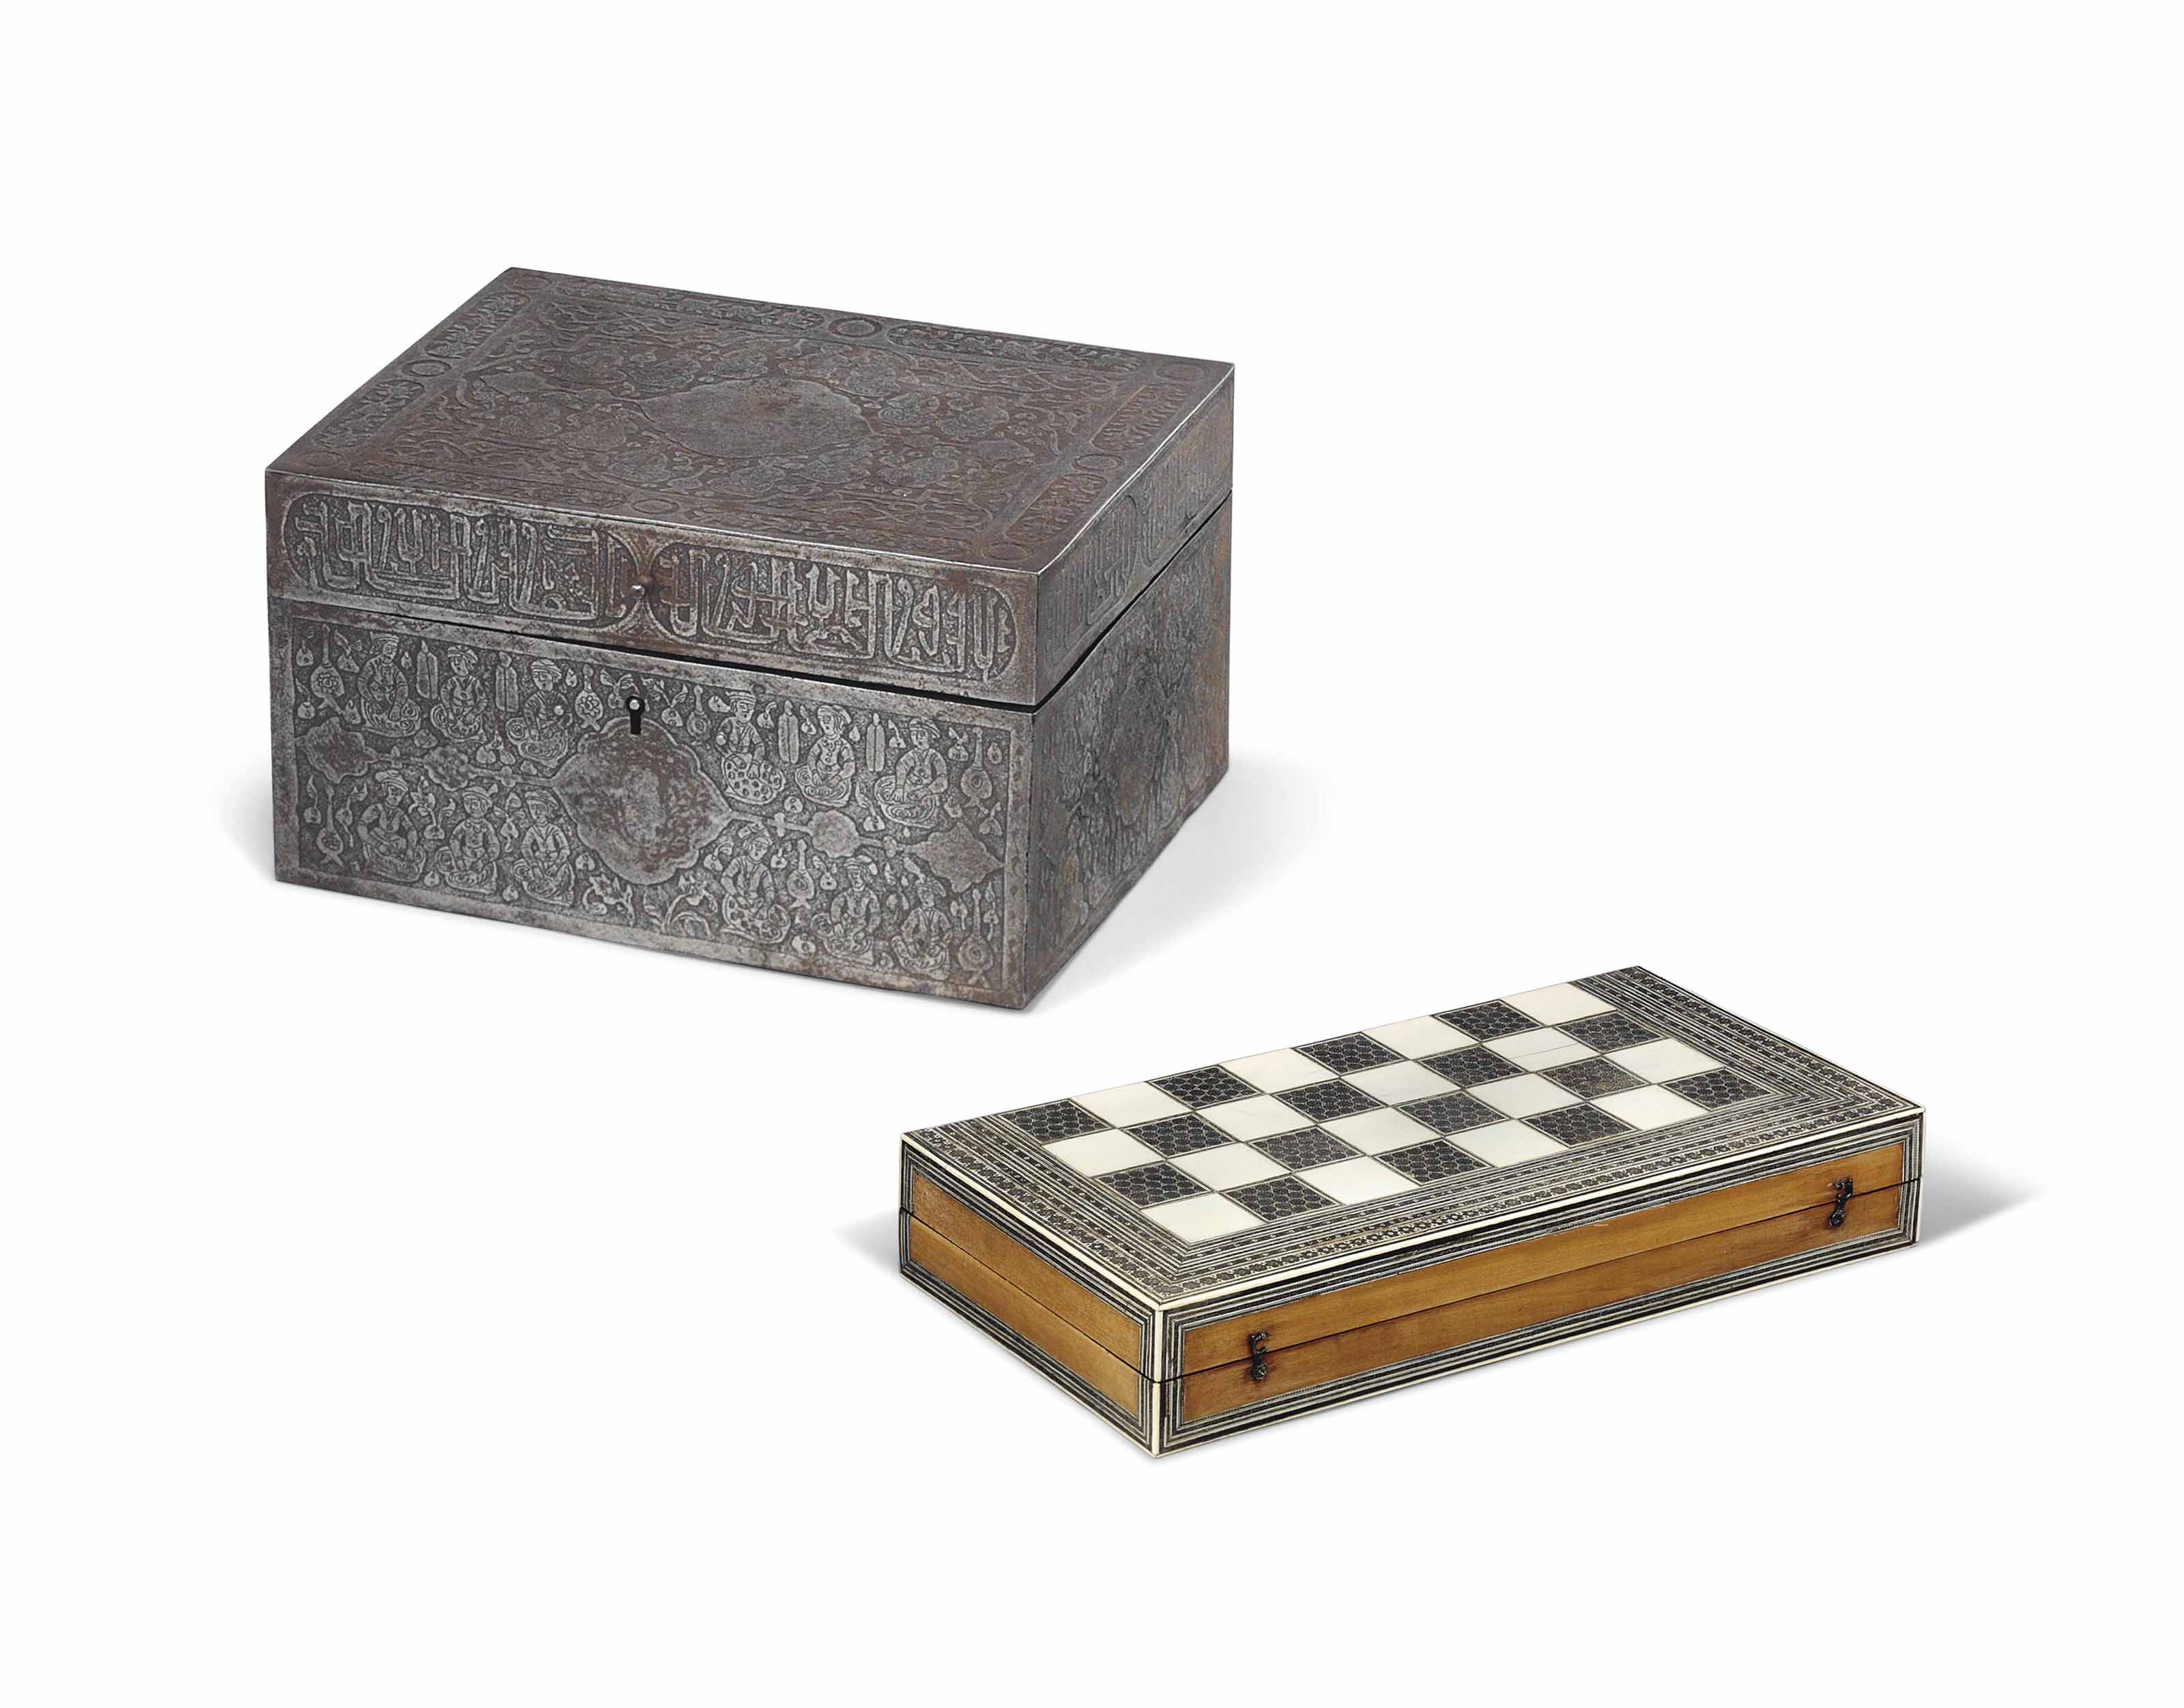 A PERSIAN ETCHED STEEL CASKET